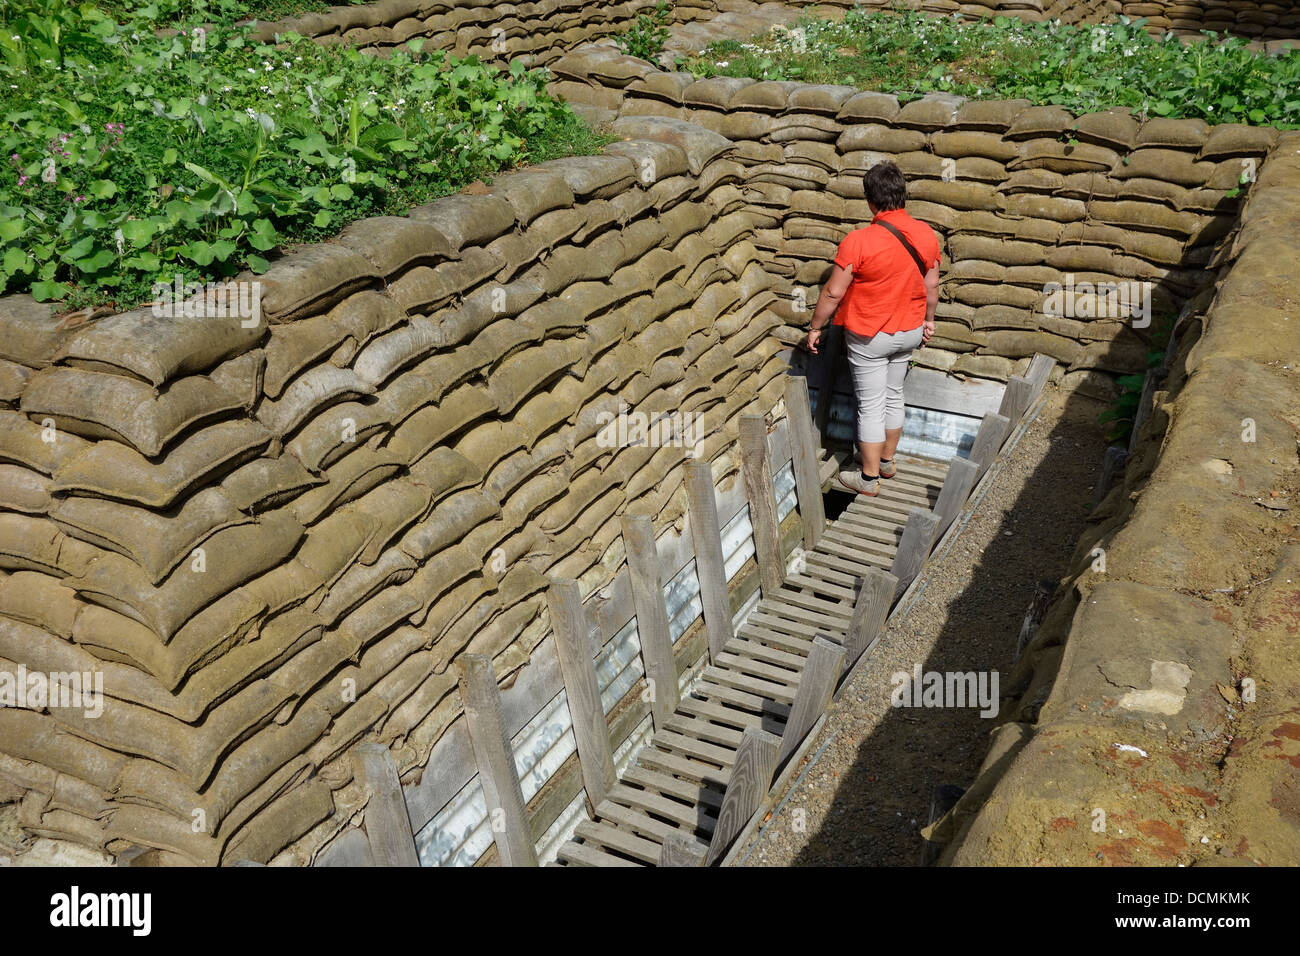 Fire Trench Stock Photos Images Alamy Diagram Ww1 British First World War One Showing Wwi Wooden Duckboards On A Frames Sandbags